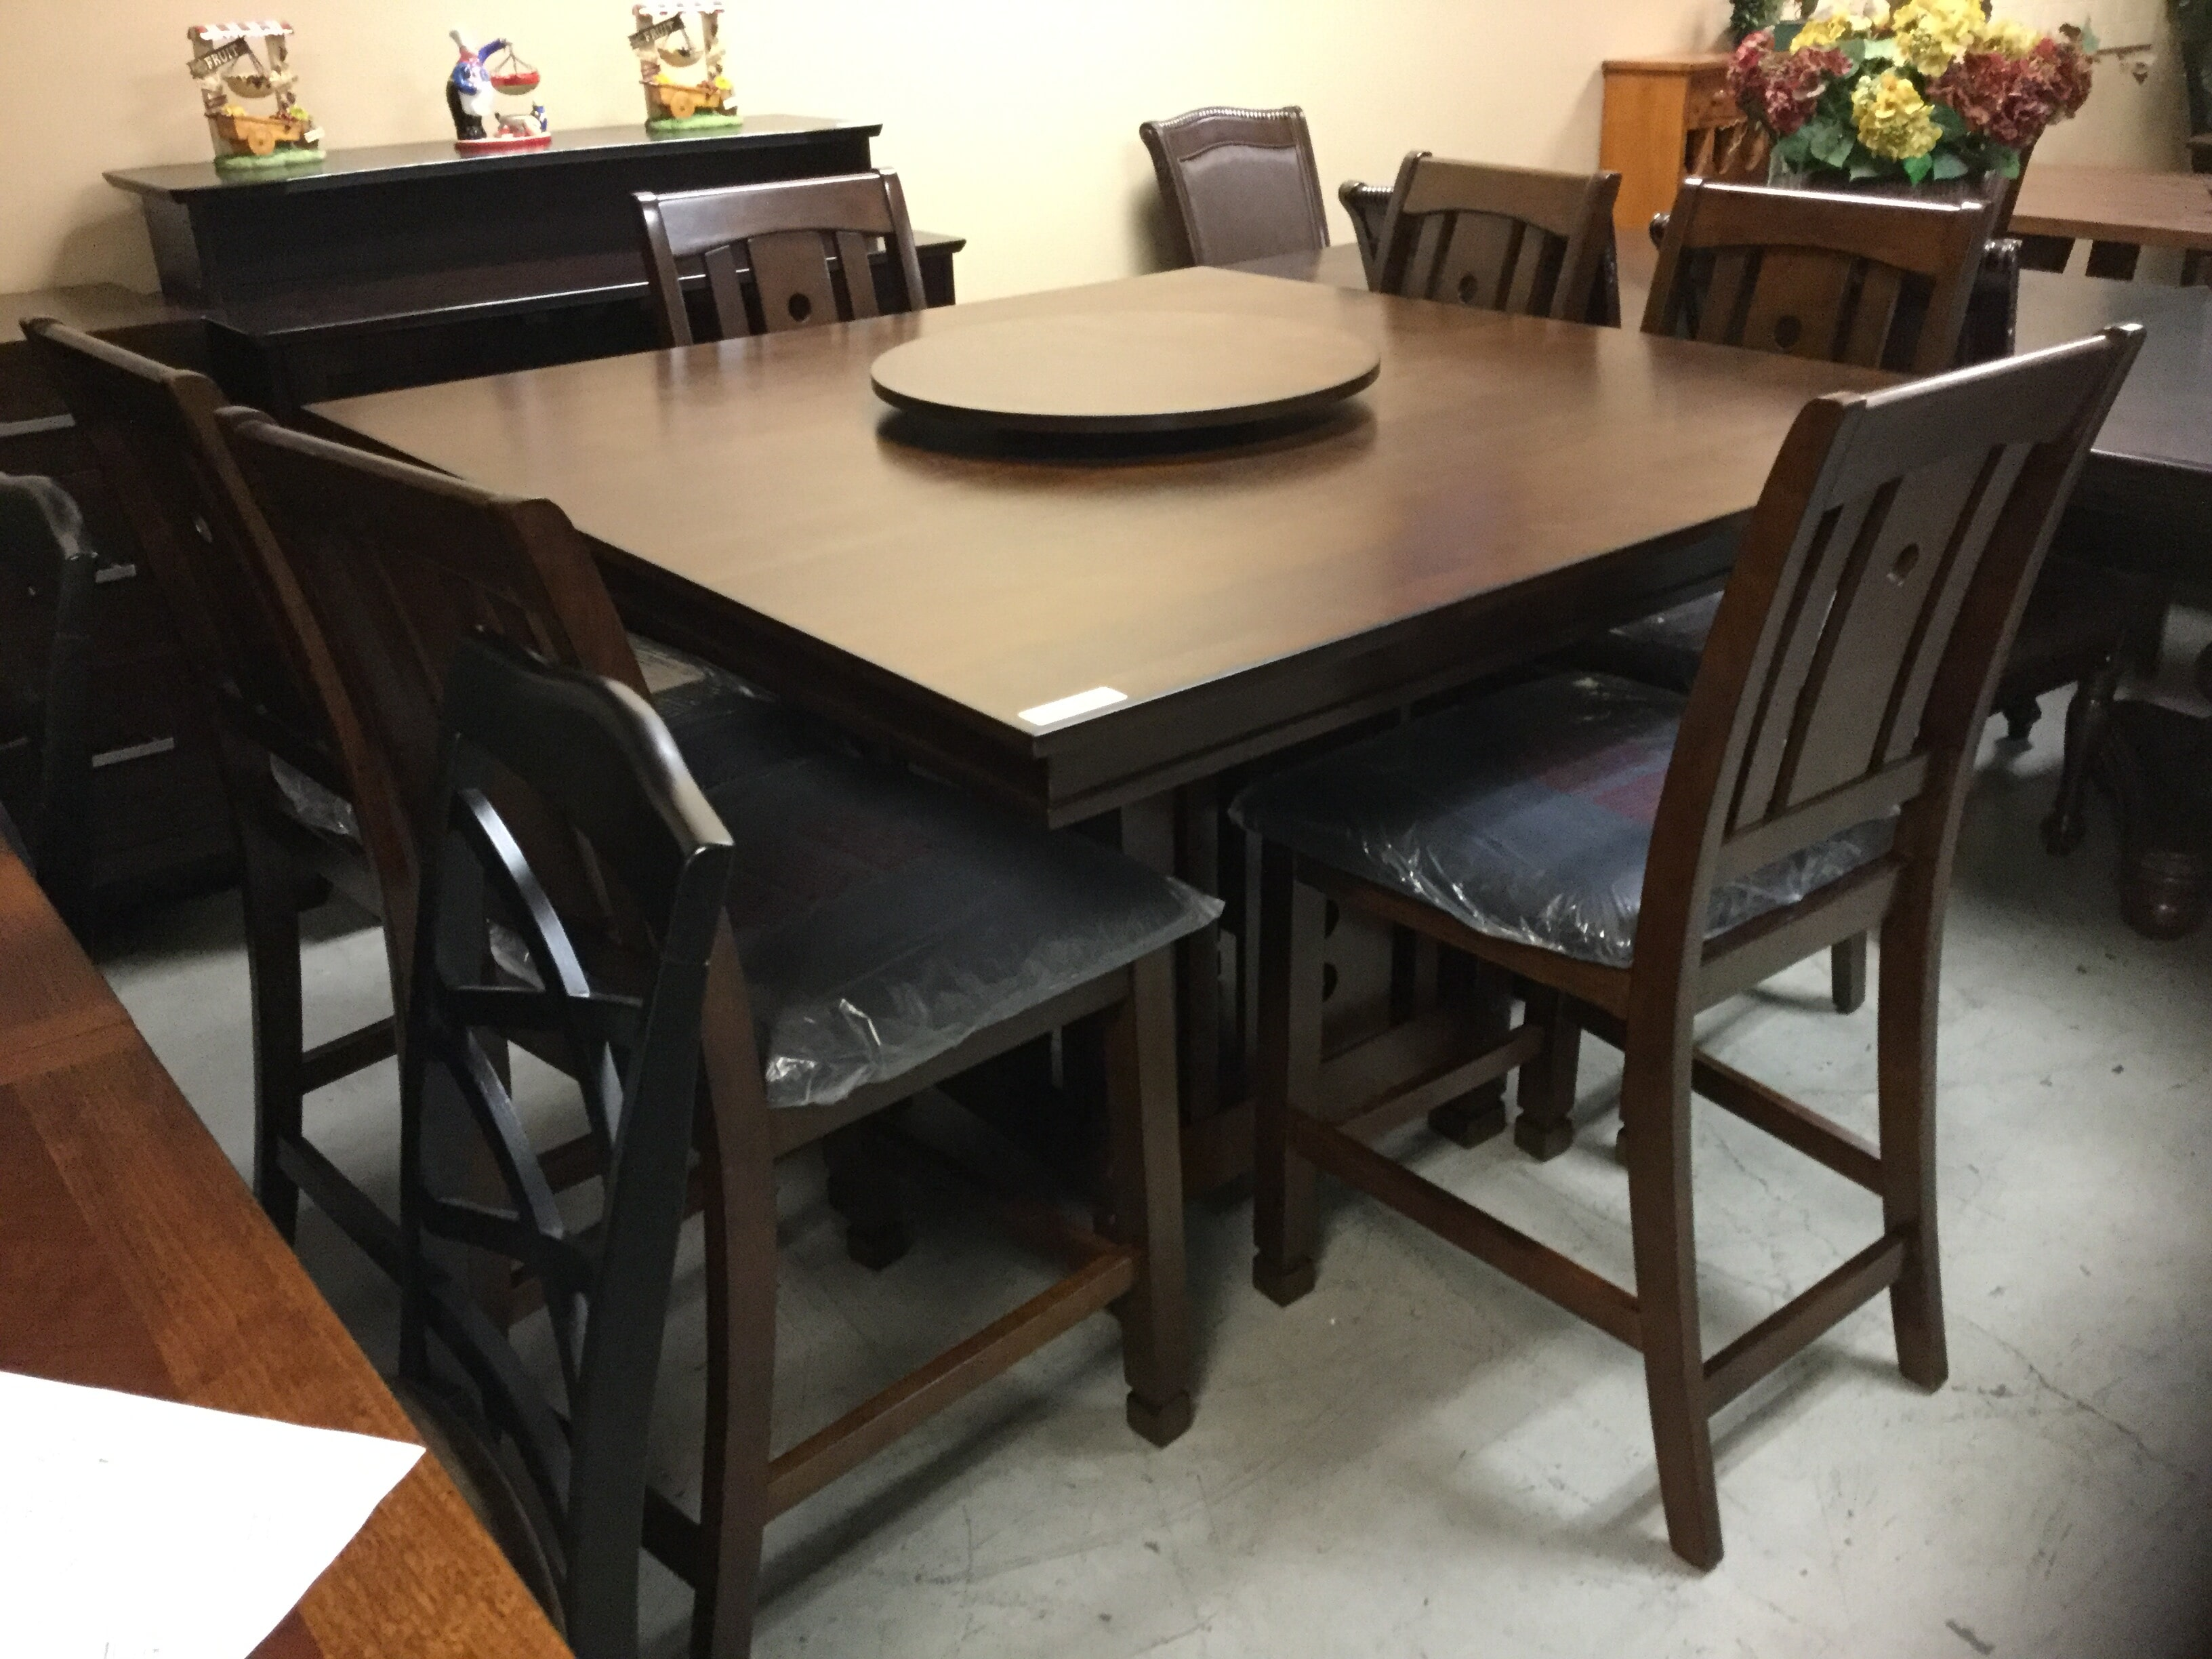 Dining Table With Lazy Susan U2014 Tables For Sale In Sacramento, CA